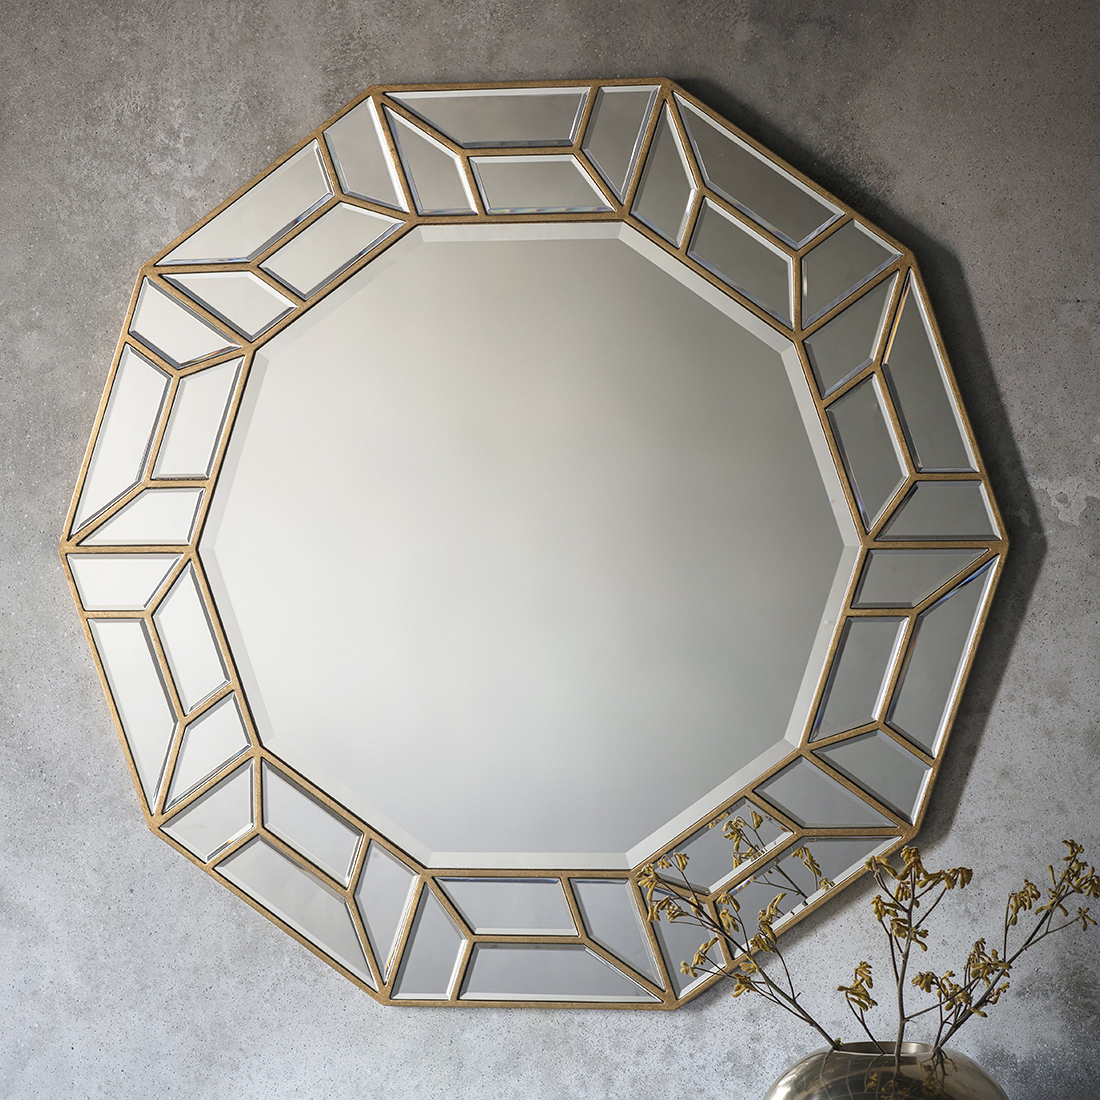 Deco Gold Geometric Wall Mirror Pertaining To Fashionable Geometric Wall Mirrors (View 9 of 20)